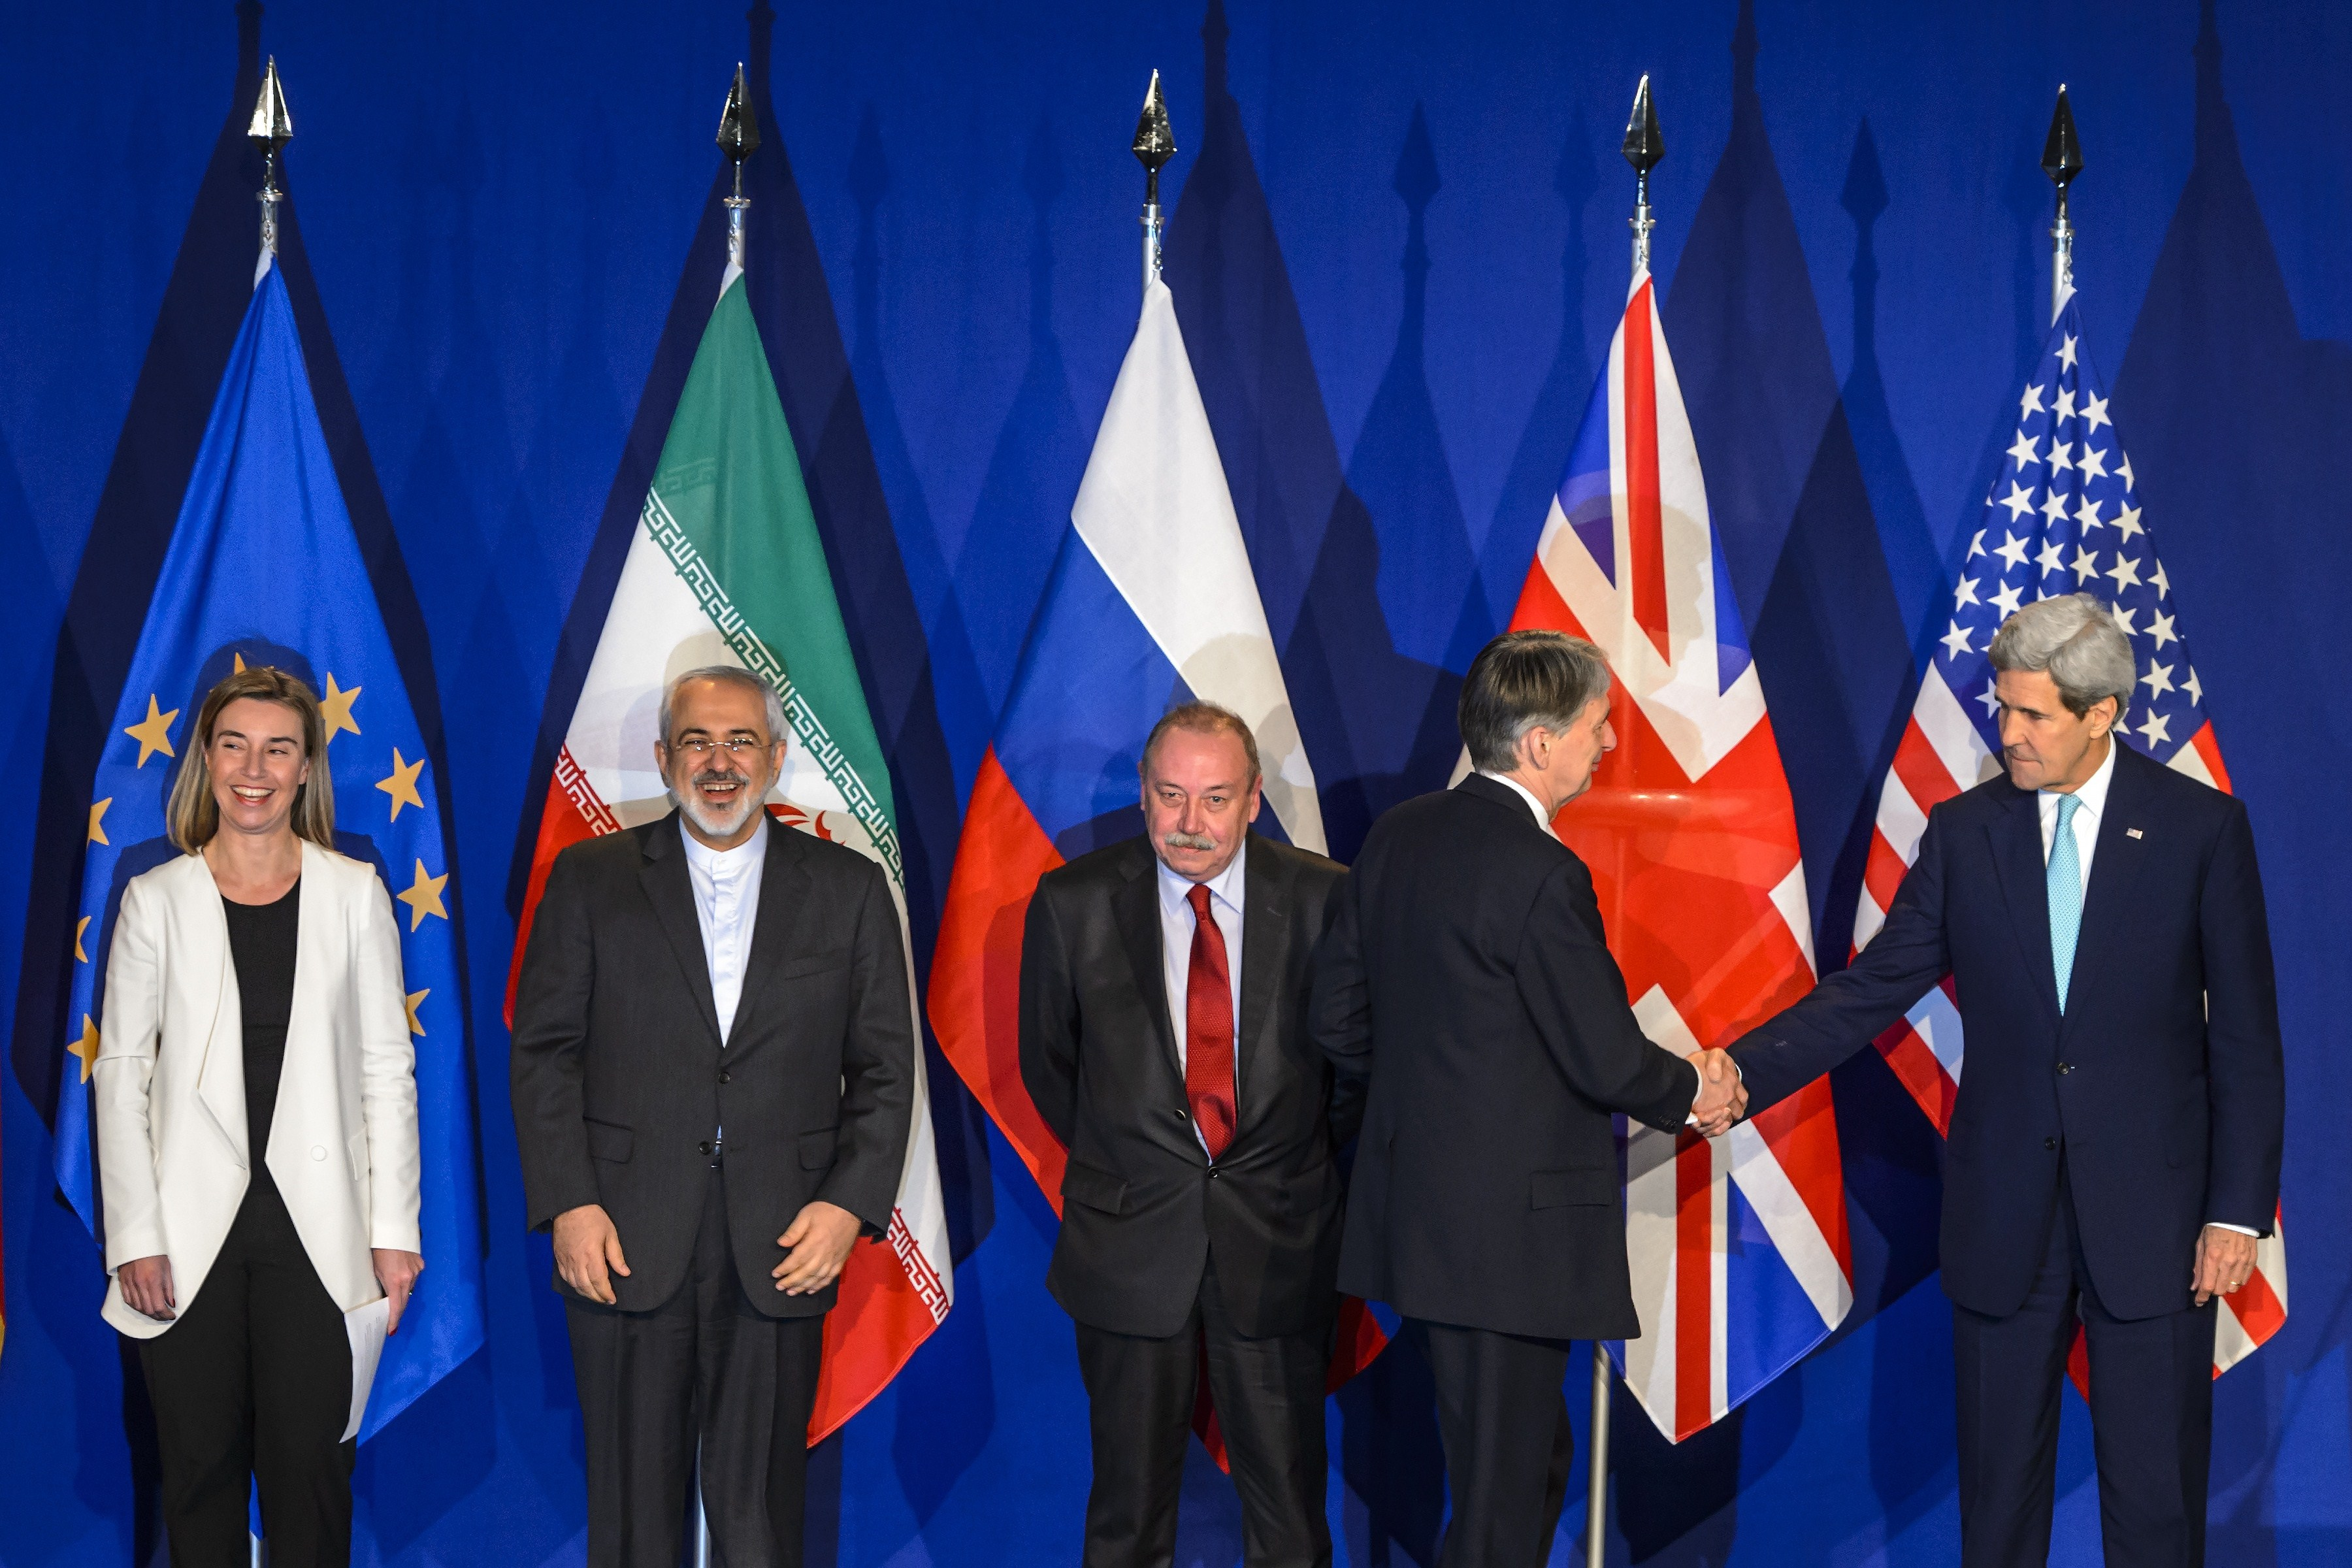 From left, EU's foreign policy chief Federica Mogherini, Iranian Foreign Minister Mohammad Javad Zarif, Deputy director of the Department for Nonproliferation and Arms Control of the Ministry of Foreign Affairs of Russia Alexey Karpov, British Foreign Secretary Philip Hammond and US Secretary of State John Kerry attend the announcement of an agreement on Iran nuclear talks on April 2, 2015 at the The Swiss Federal Institutes of Technology. (Getty)